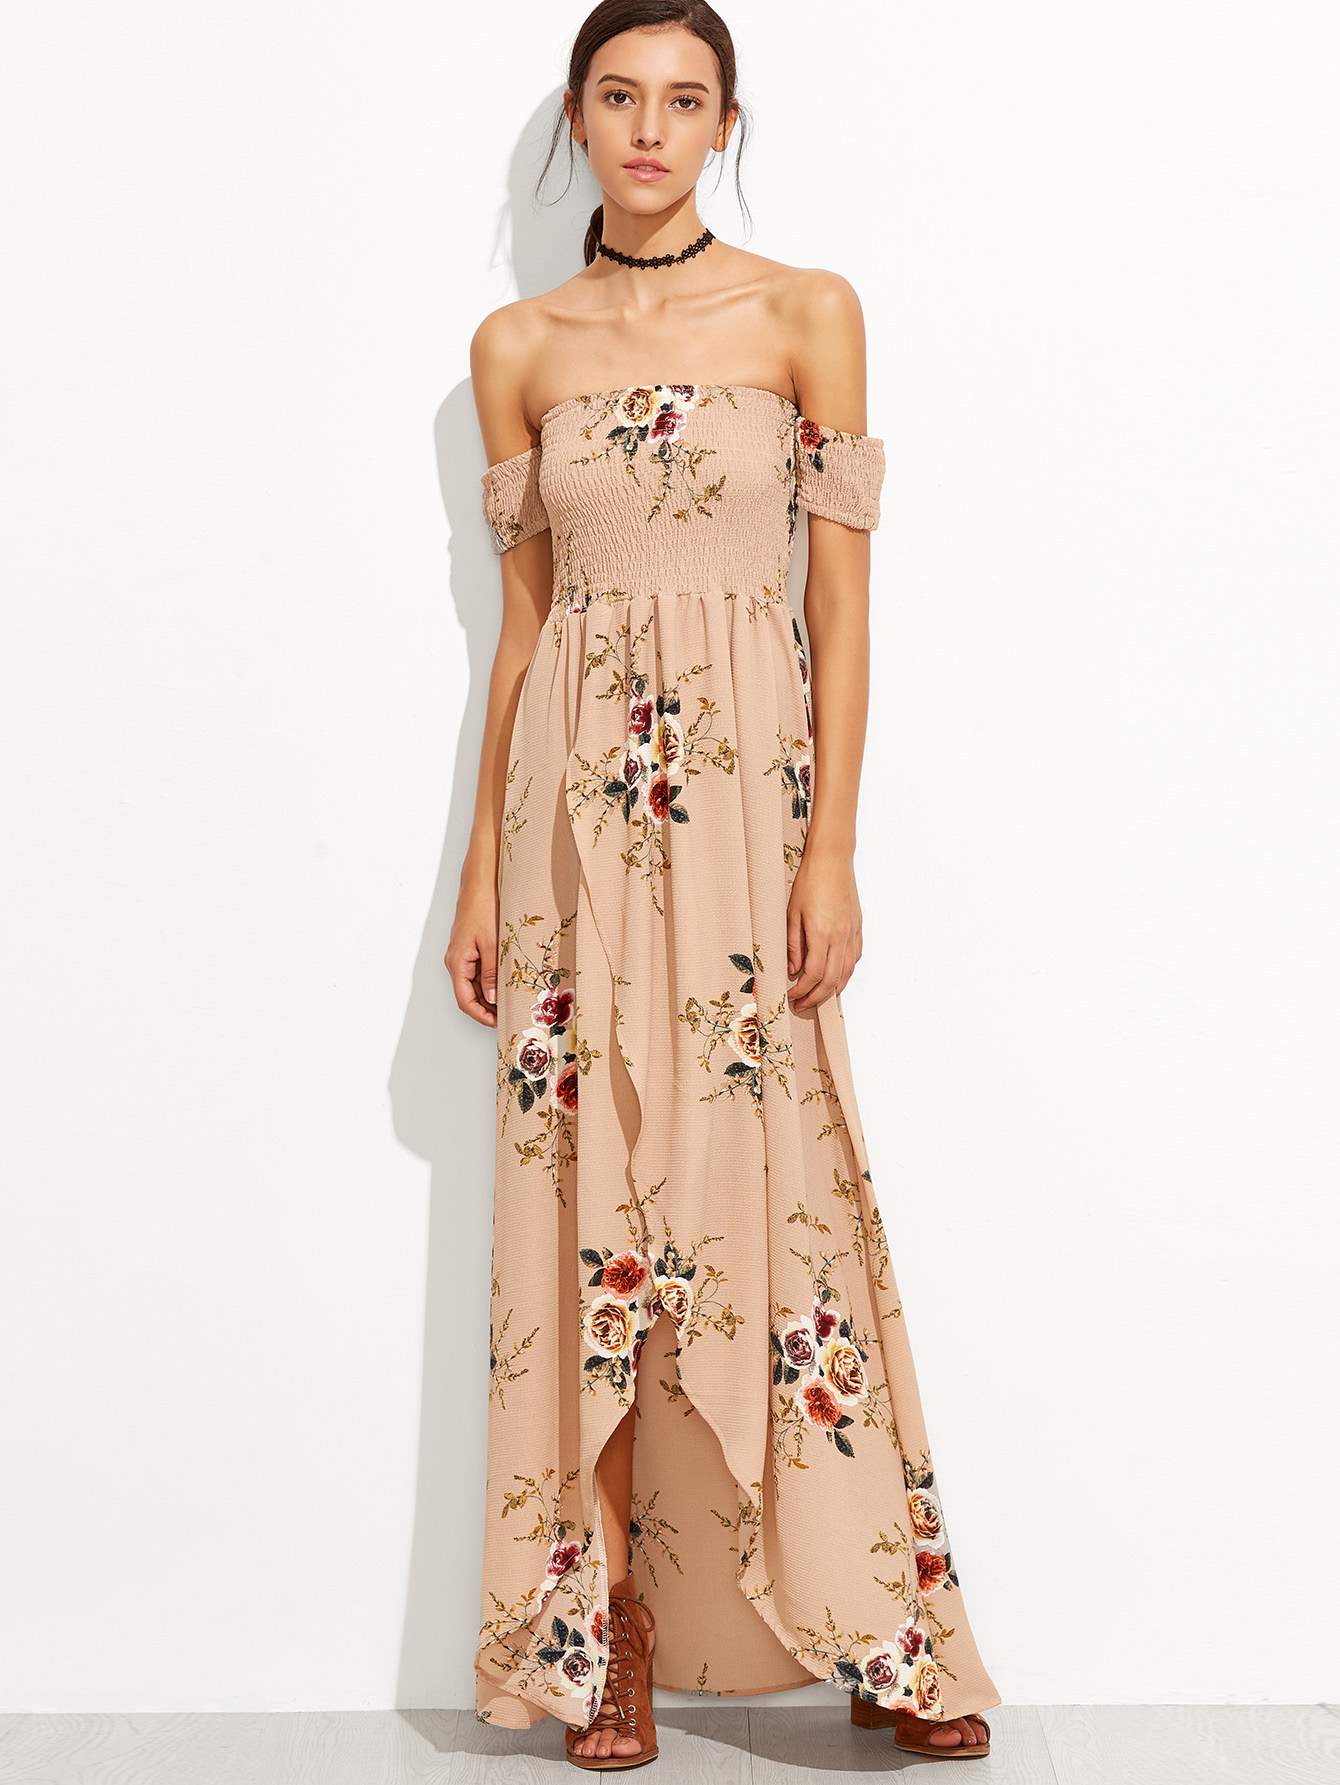 Bardot Florals Shirred Tulip Hem Dress Shein Sheinside